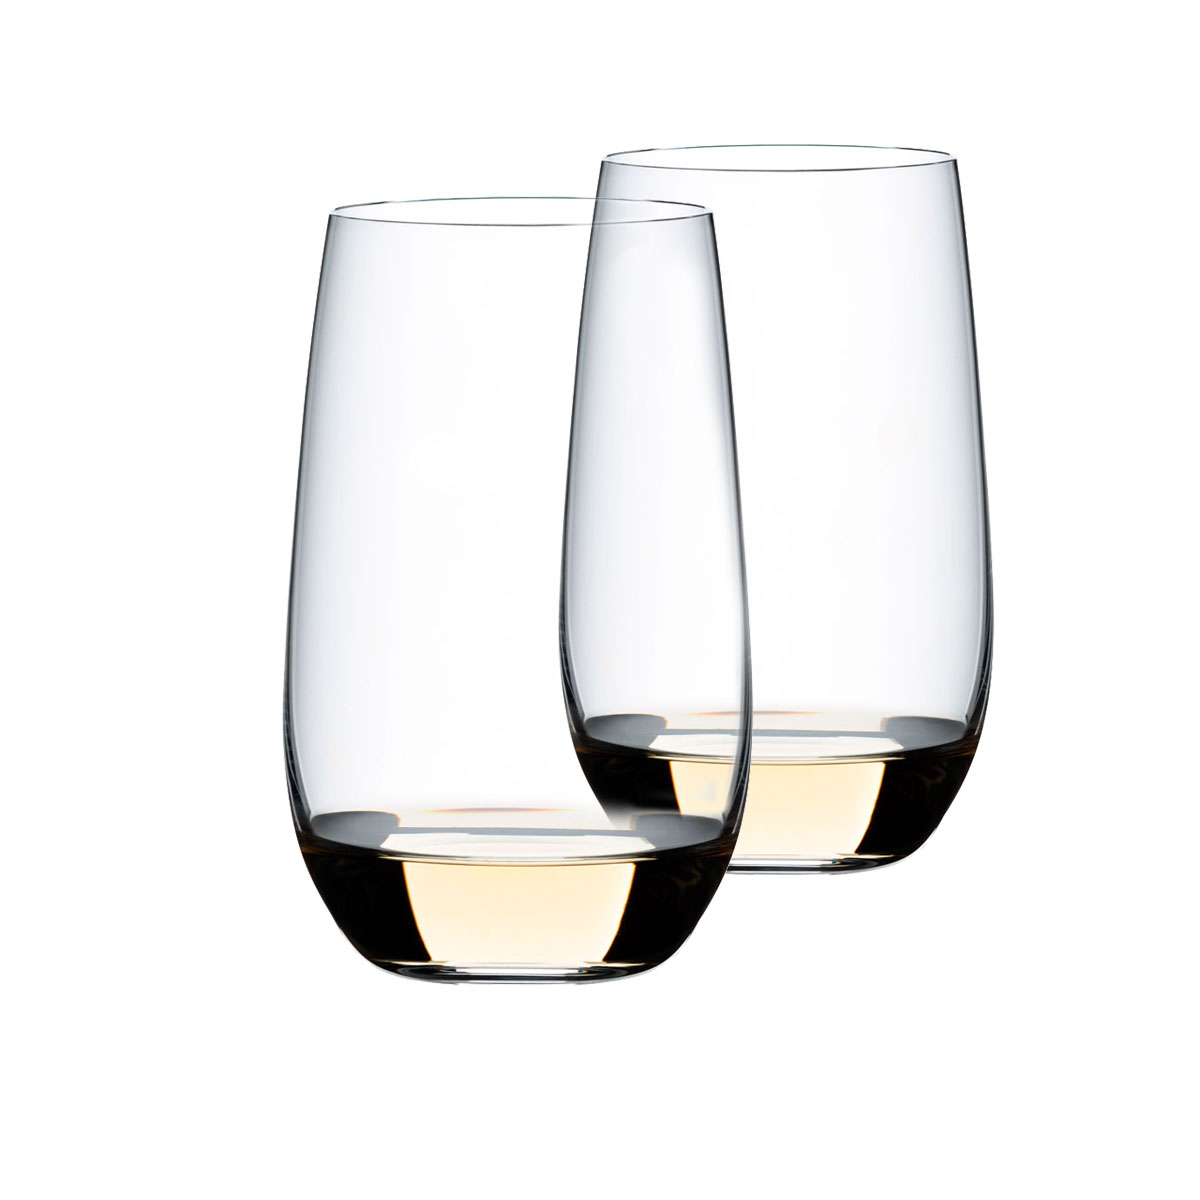 Riedel O Tequila Crystal Tumblers, Pair